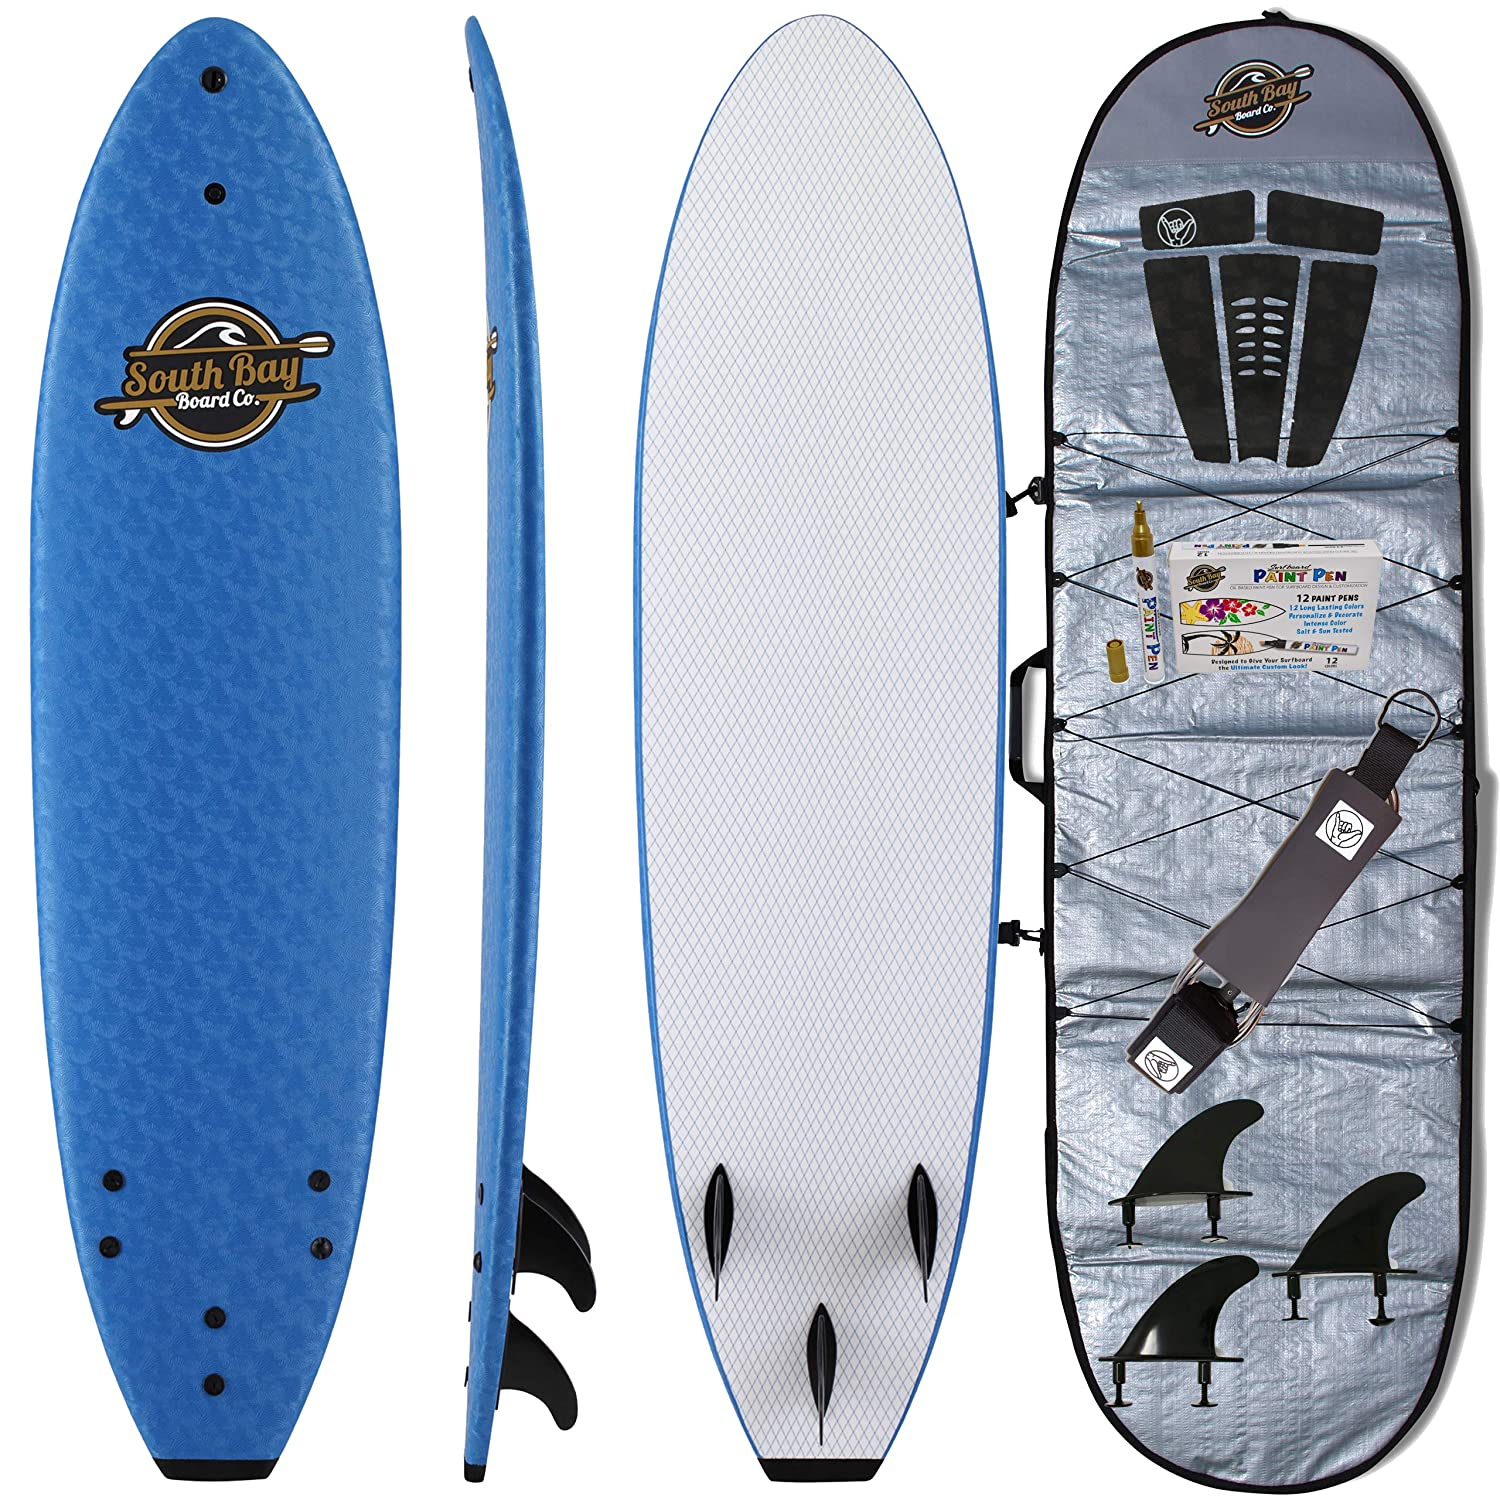 Soft Top Surfboard + Bag Package - Best Foam Surf Board for Beginners, Kids, and Adults